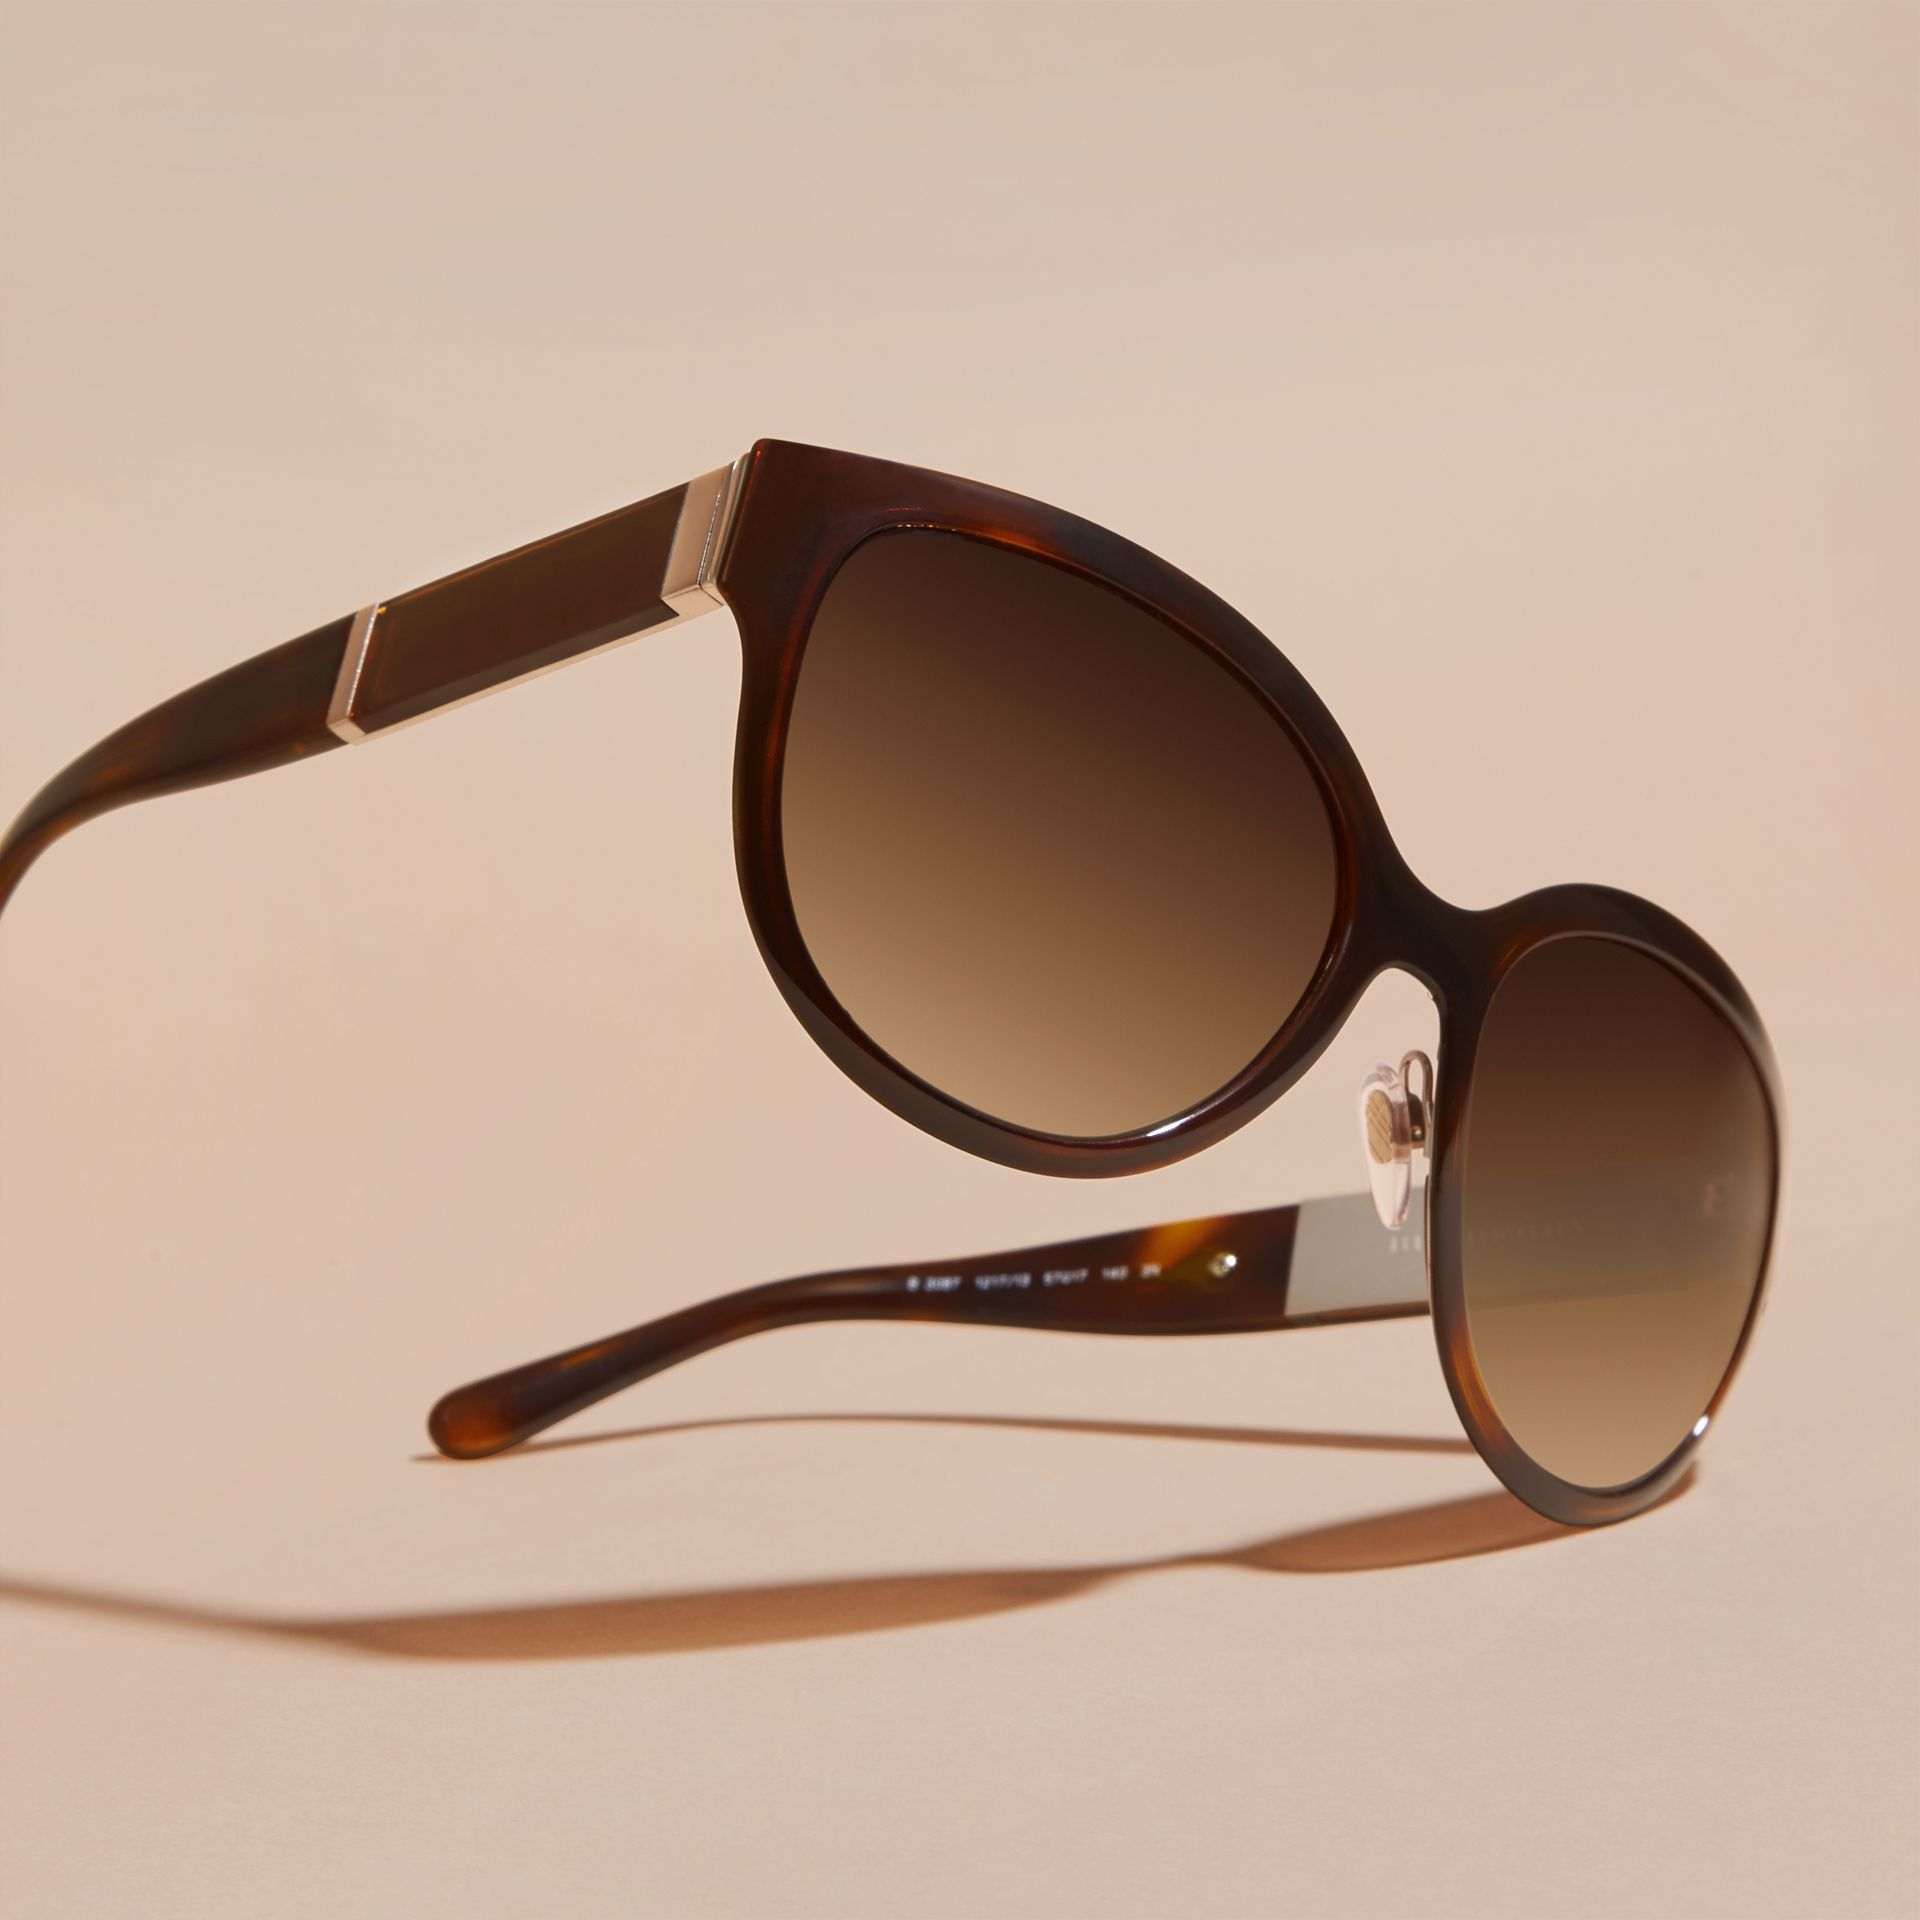 Light russet brown Check Detail Round Cat-eye Sunglasses Light Russet Brown - gallery image 3